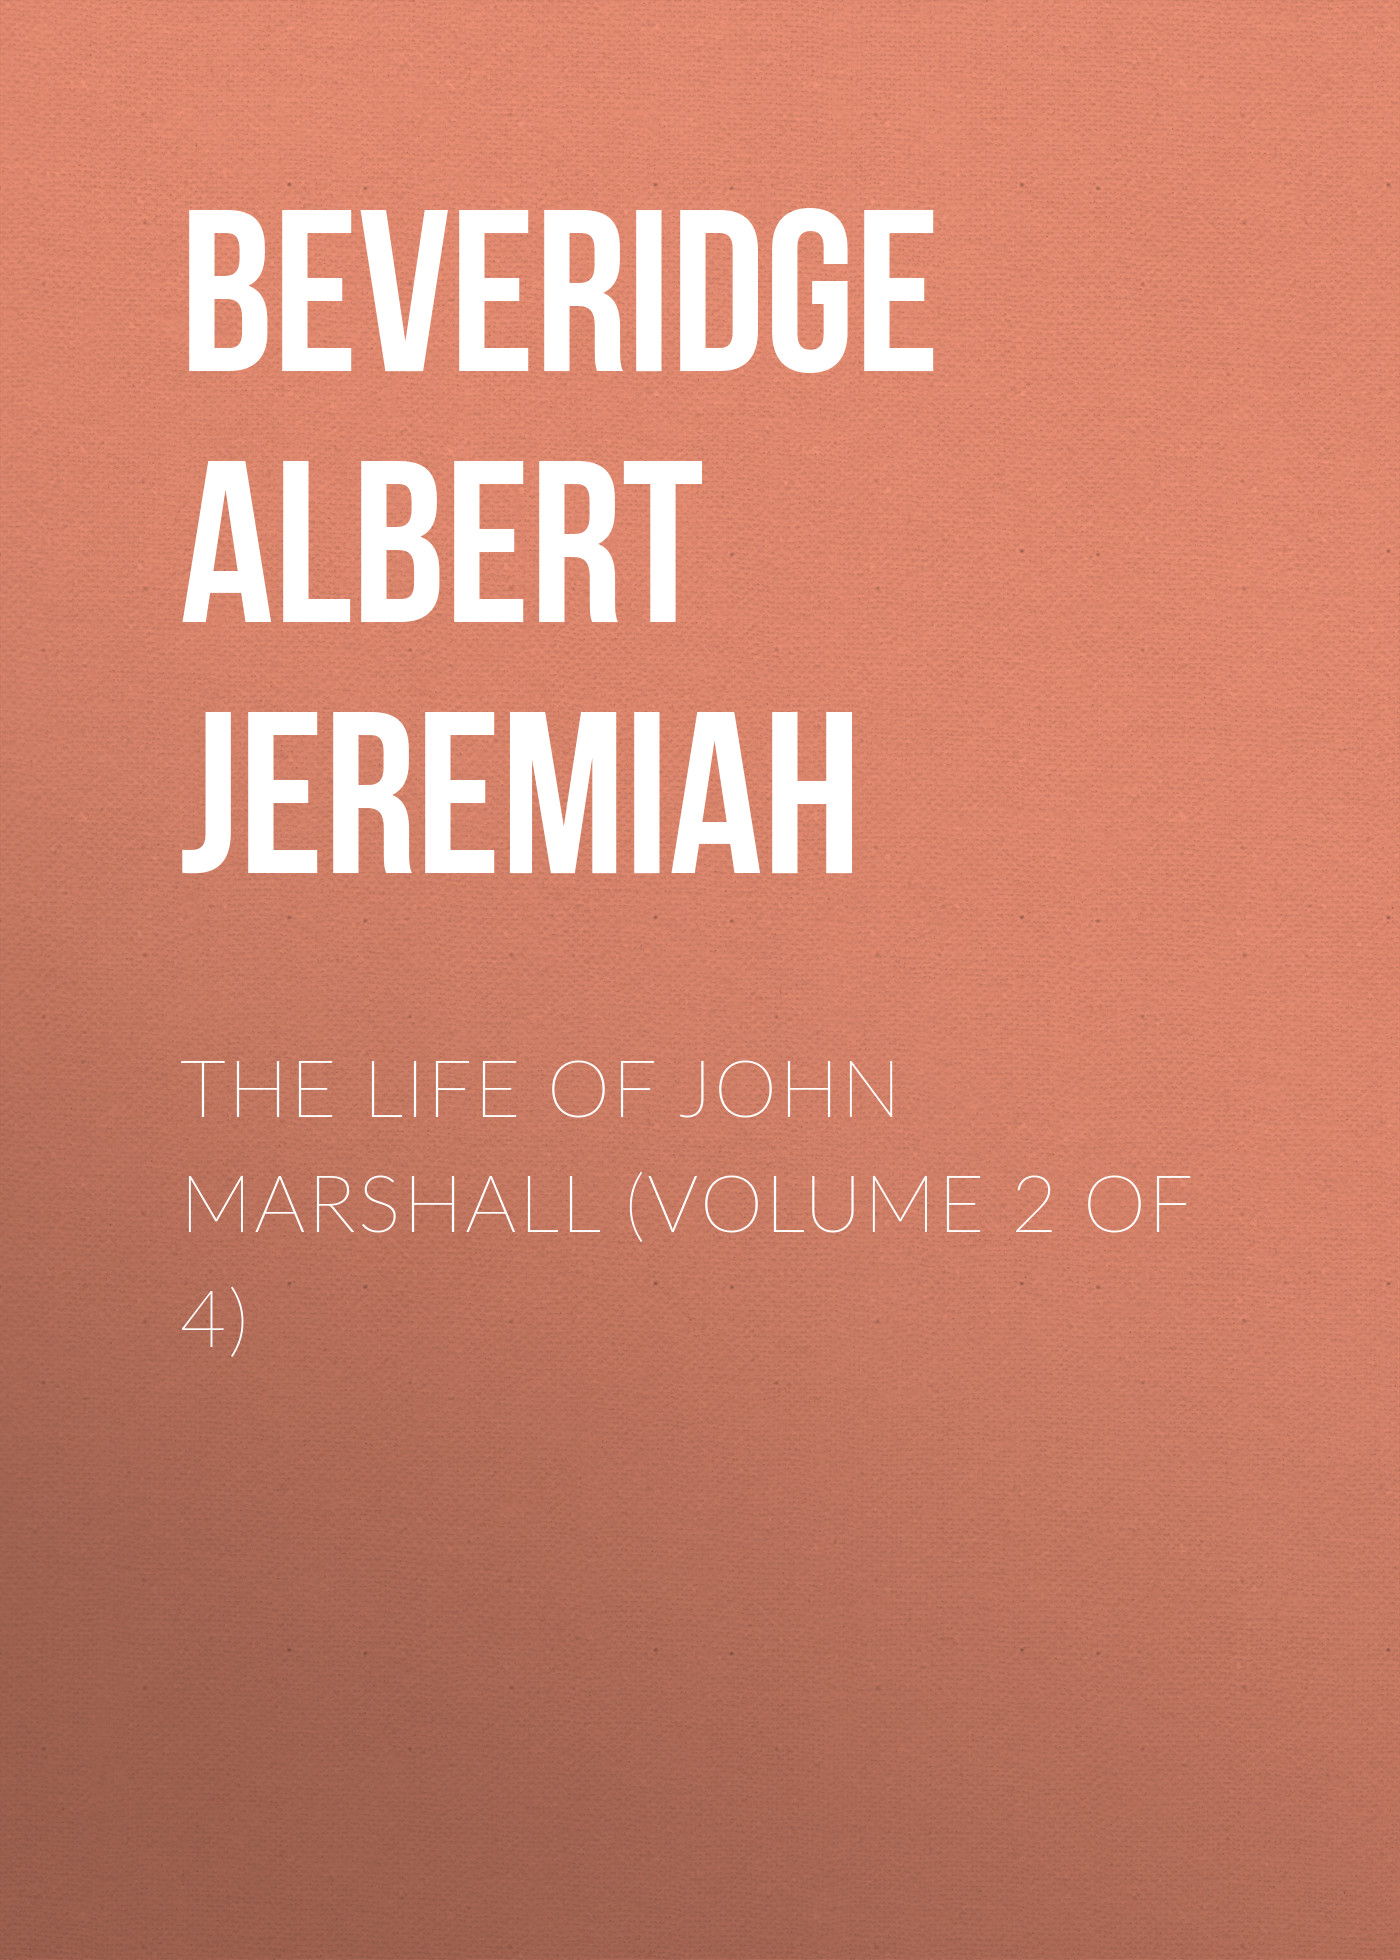 Beveridge Albert Jeremiah The Life of John Marshall (Volume 2 of 4) long john silver volume 4 guiana capac